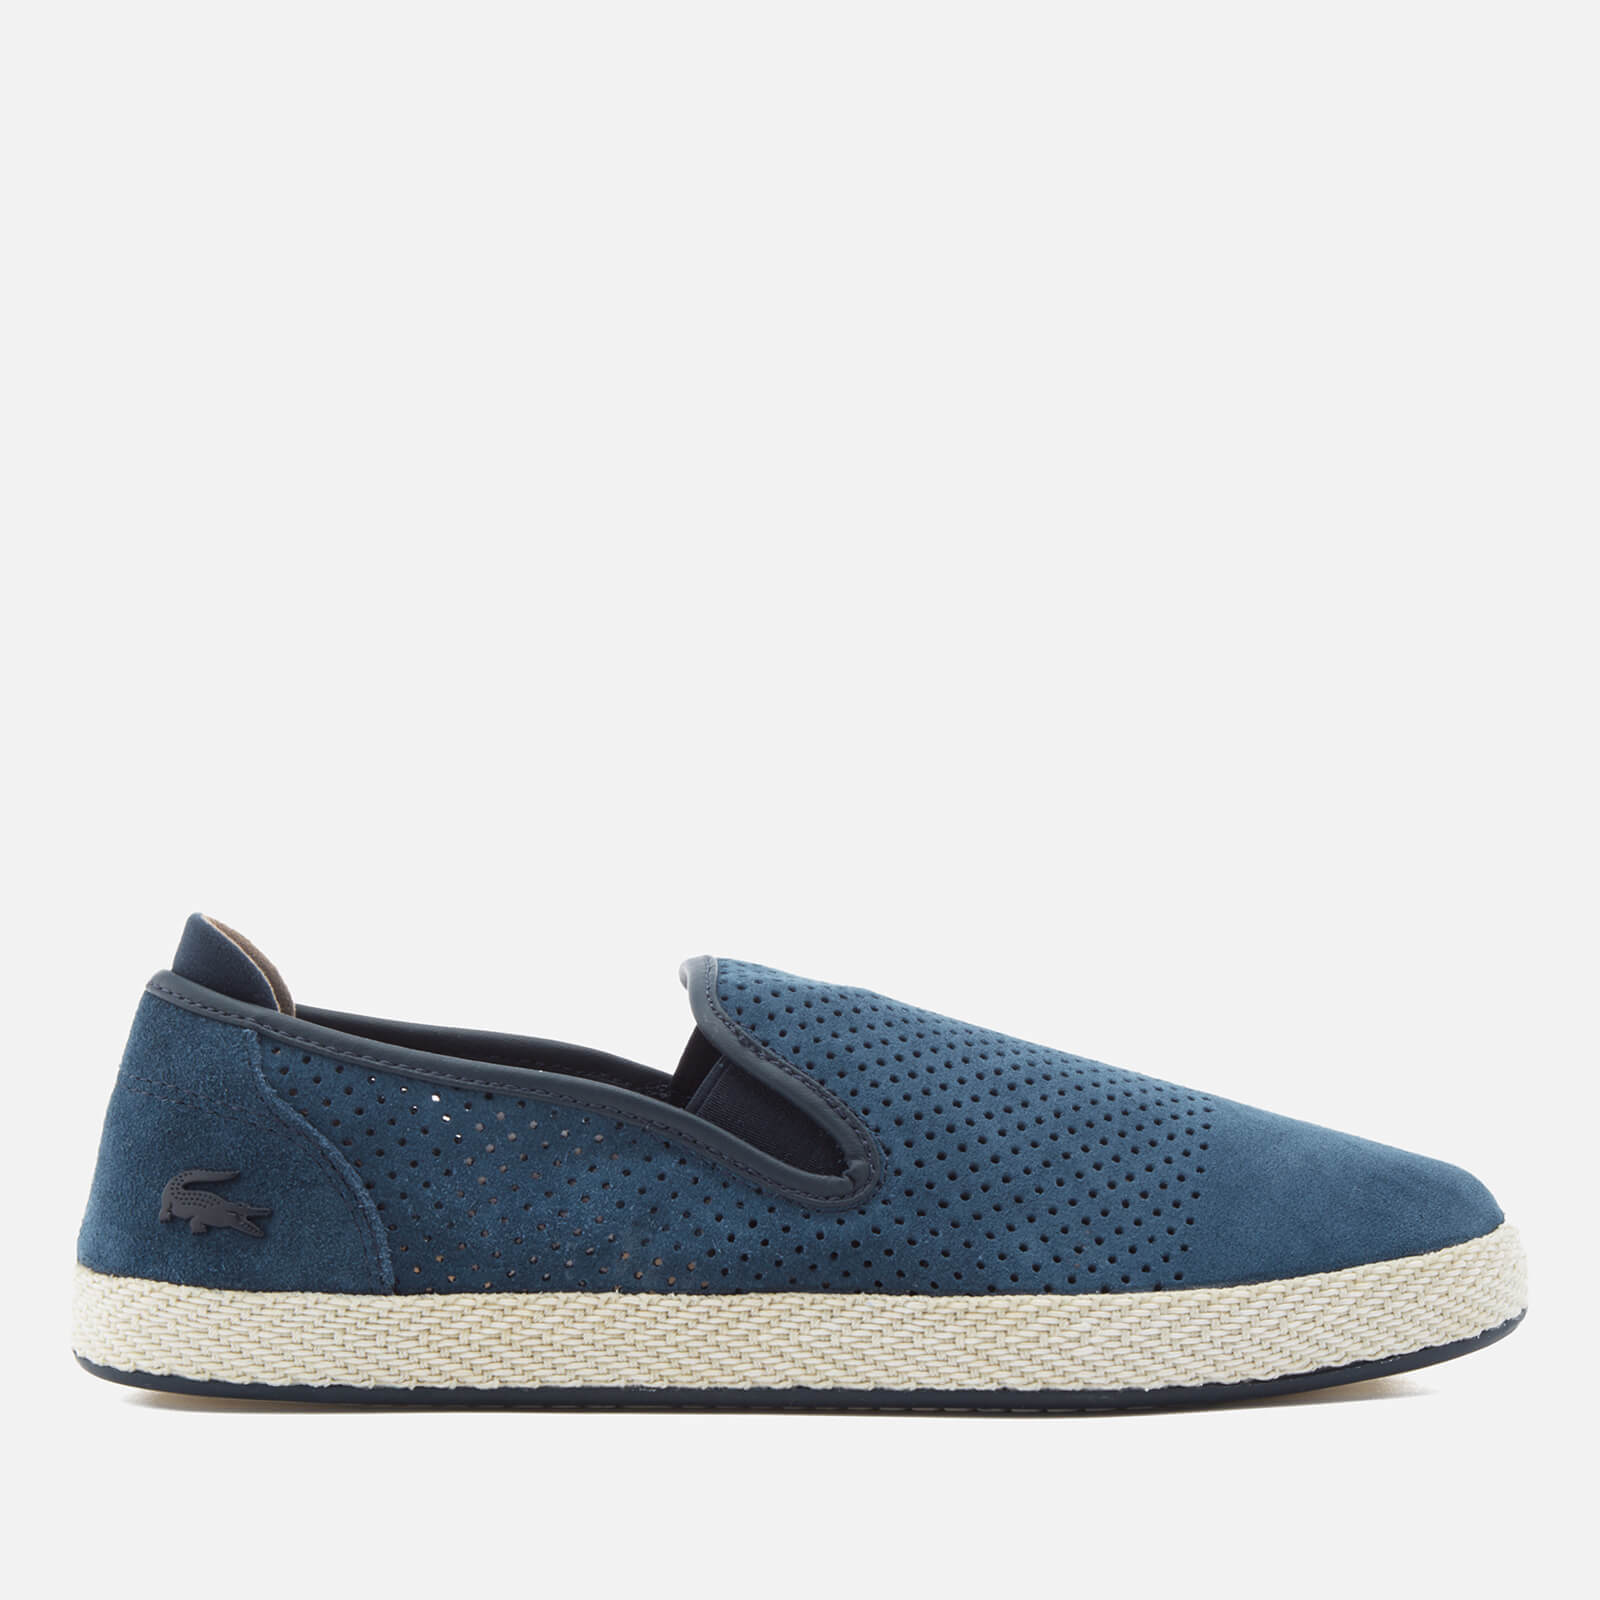 ed654198d Lacoste Men s Tombre Slip-On 117 Espadrilles - Navy - Free UK Delivery over  £50